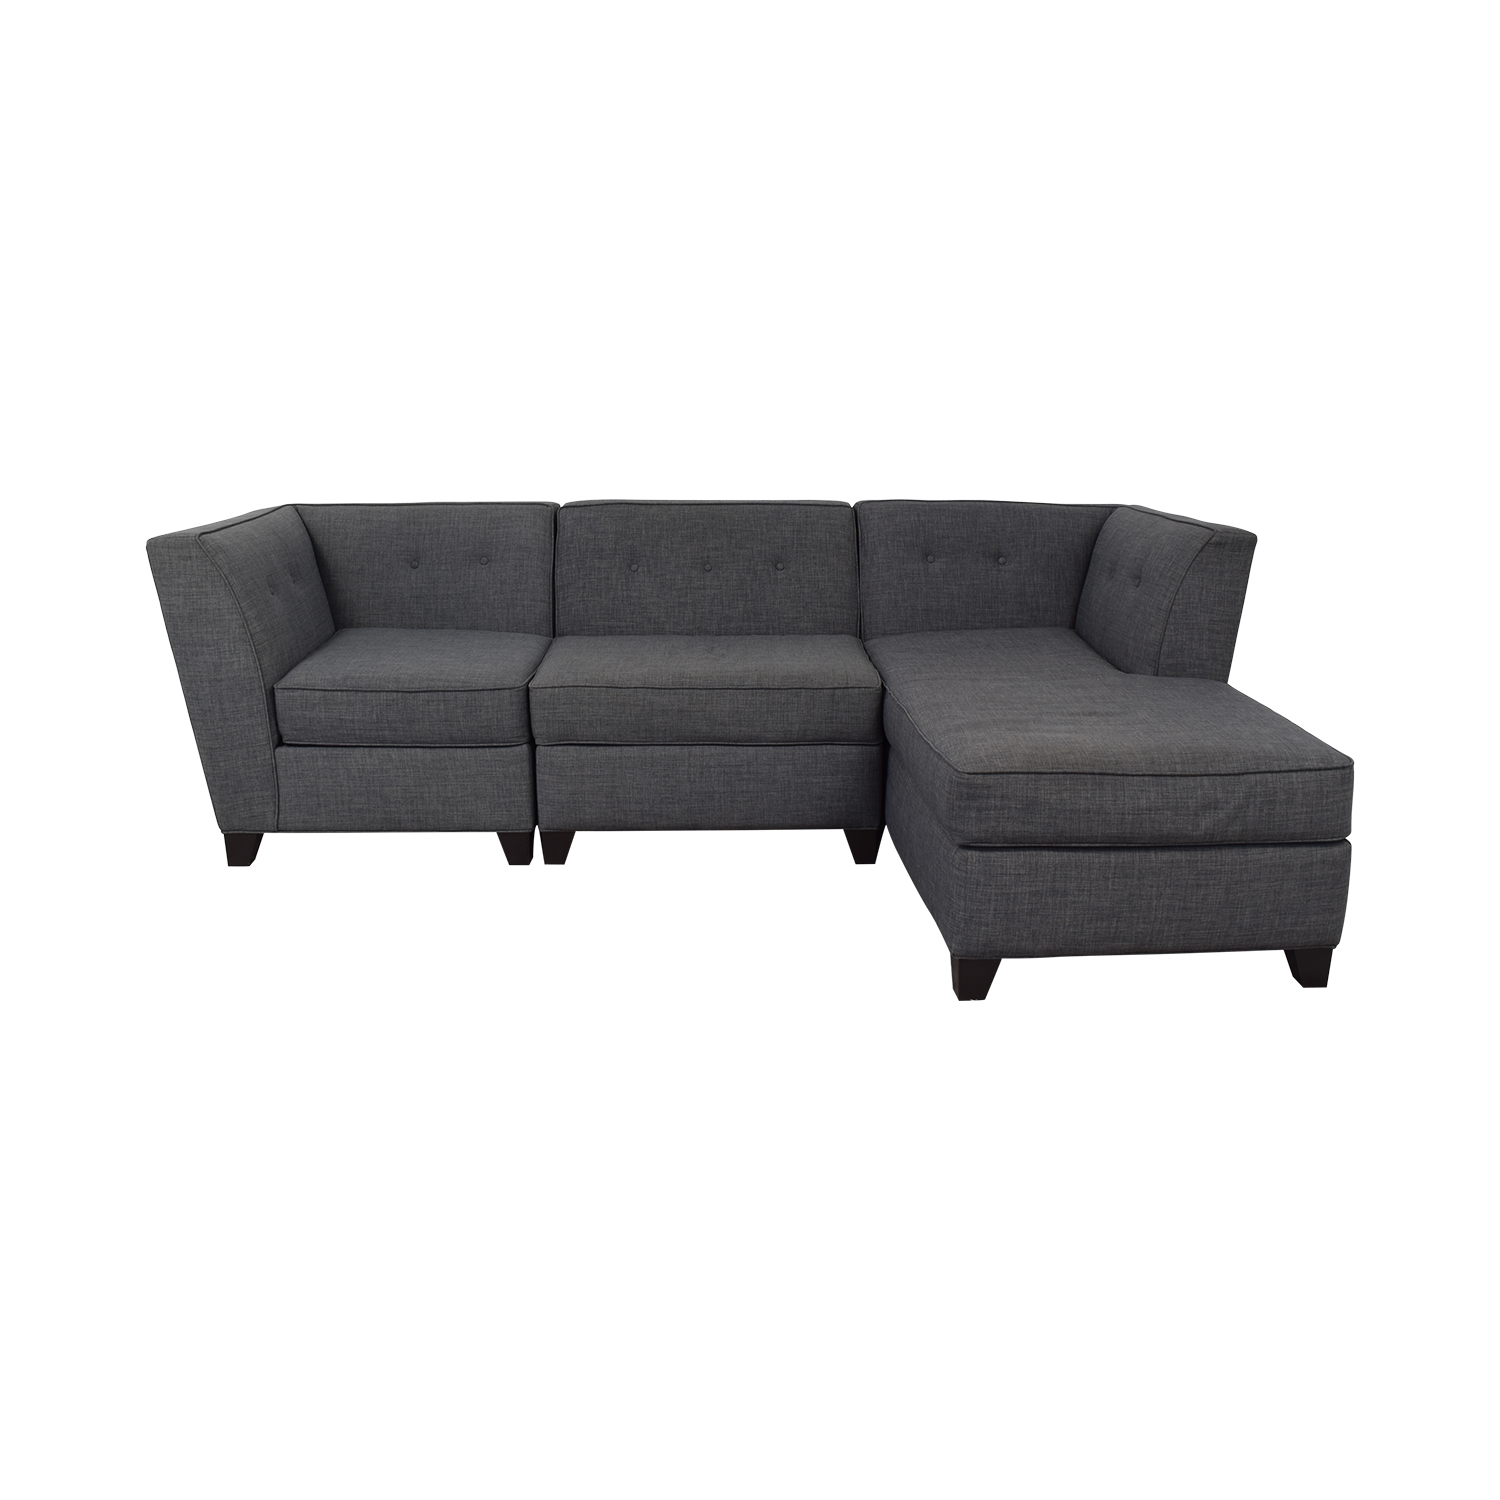 Macy's Macy's Three-Piece Chaise Sectional Sofa blue/gray